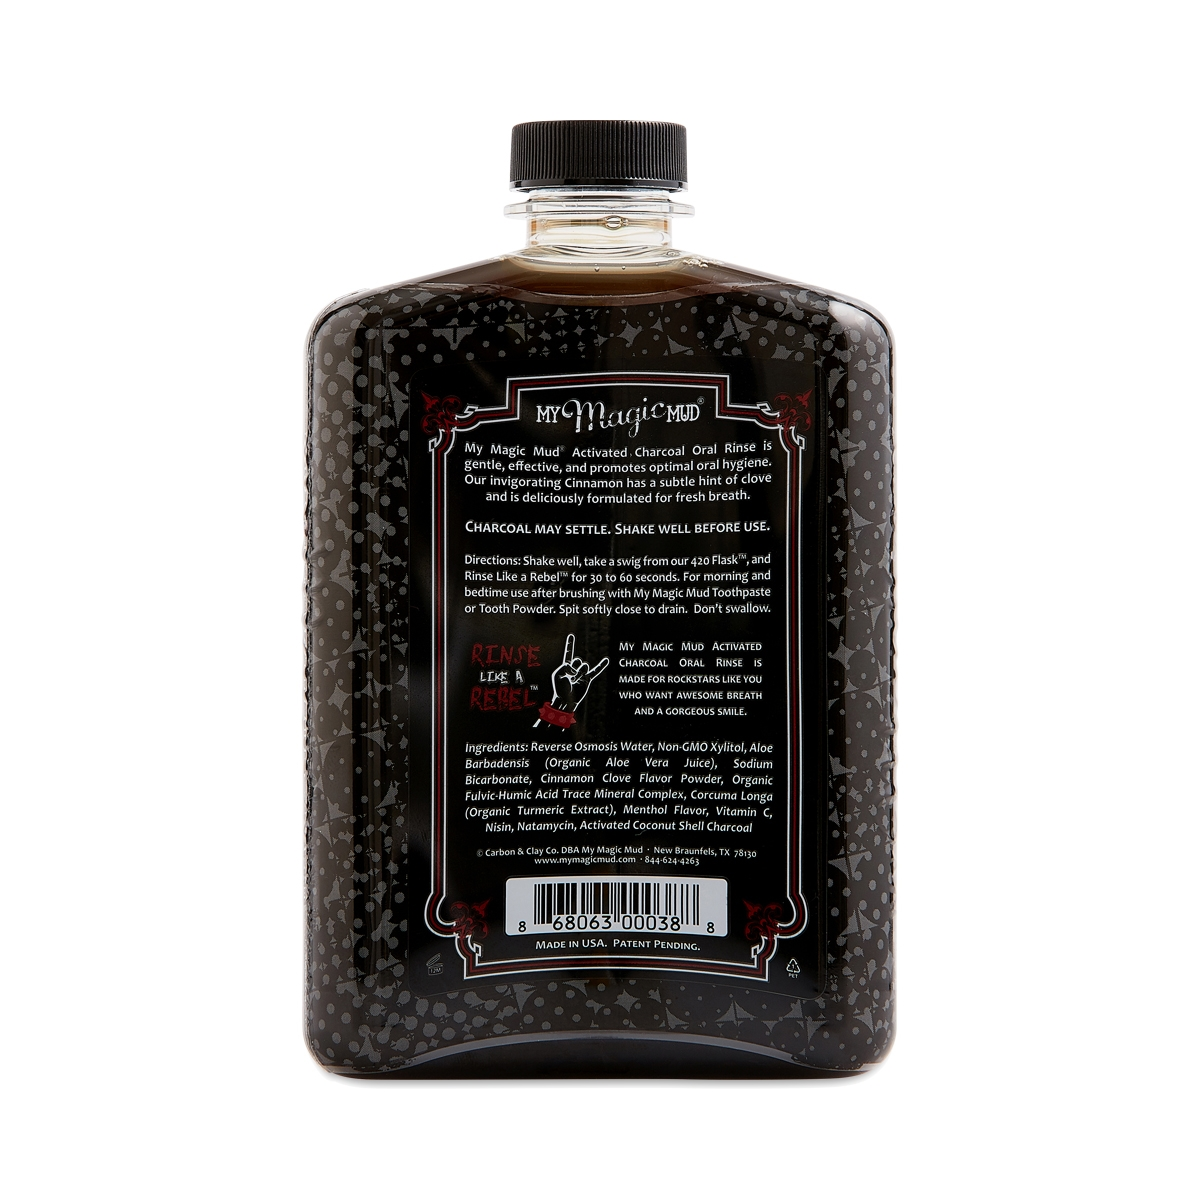 Activated Charcoal Oral Rinse, Cinnamon